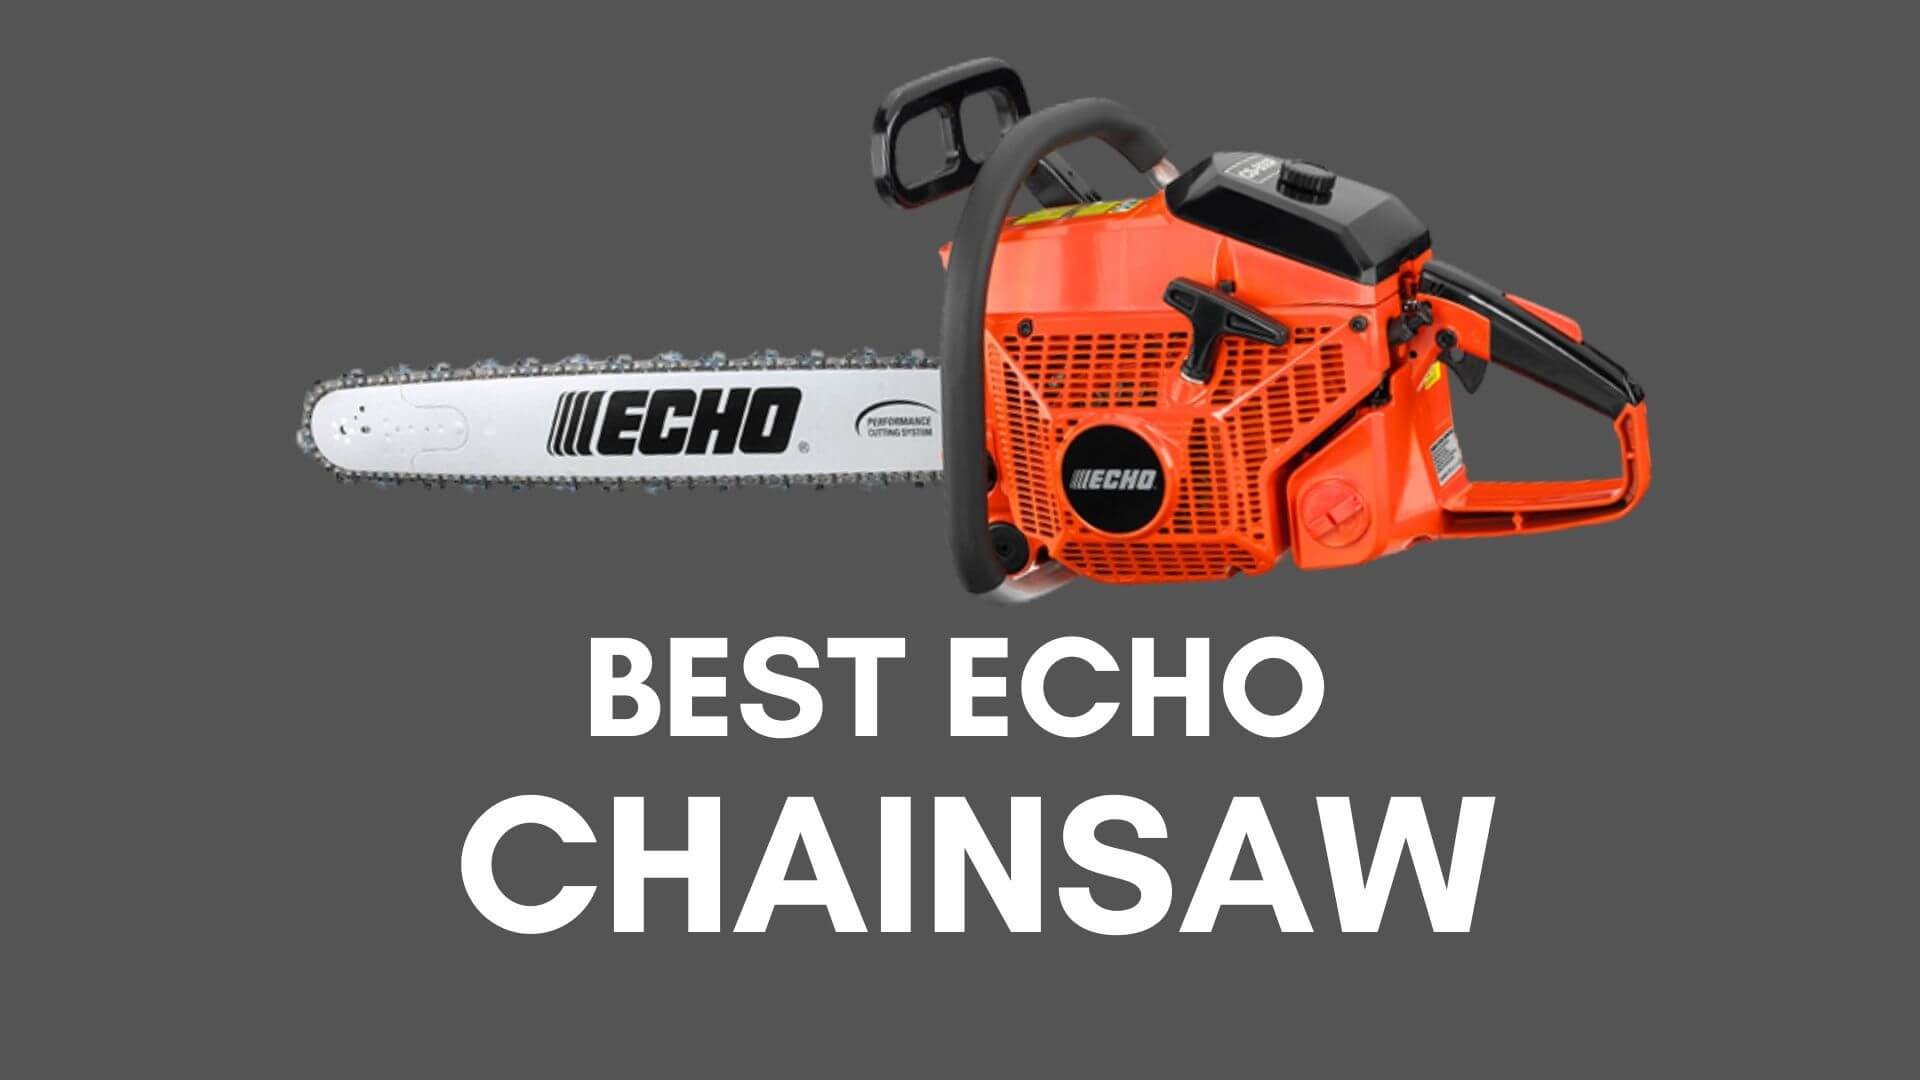 BEST echo chainsaw reviews 2021